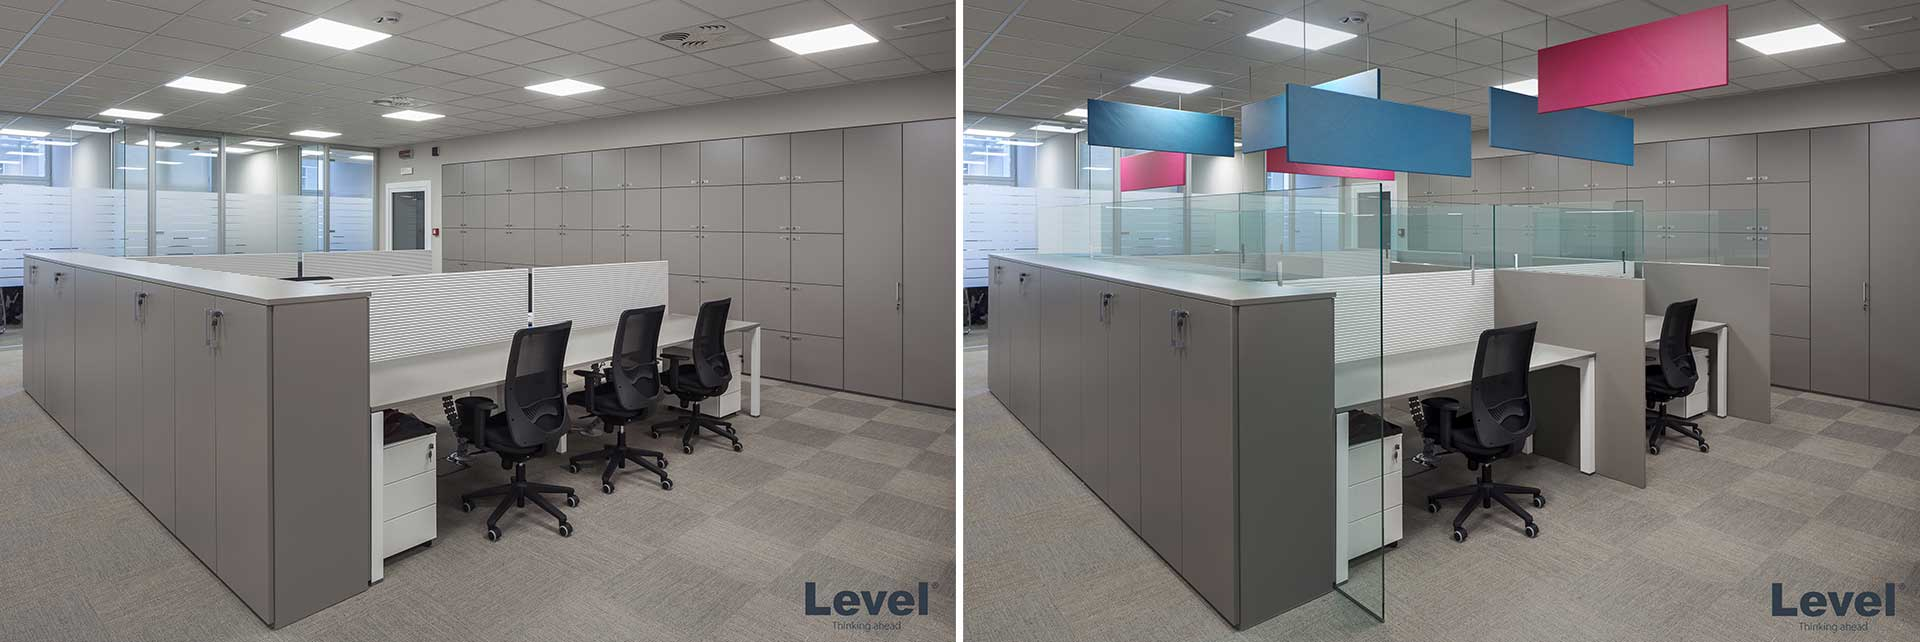 Progetto-integrato-screen-di-separazione-Level-Office-Landscape